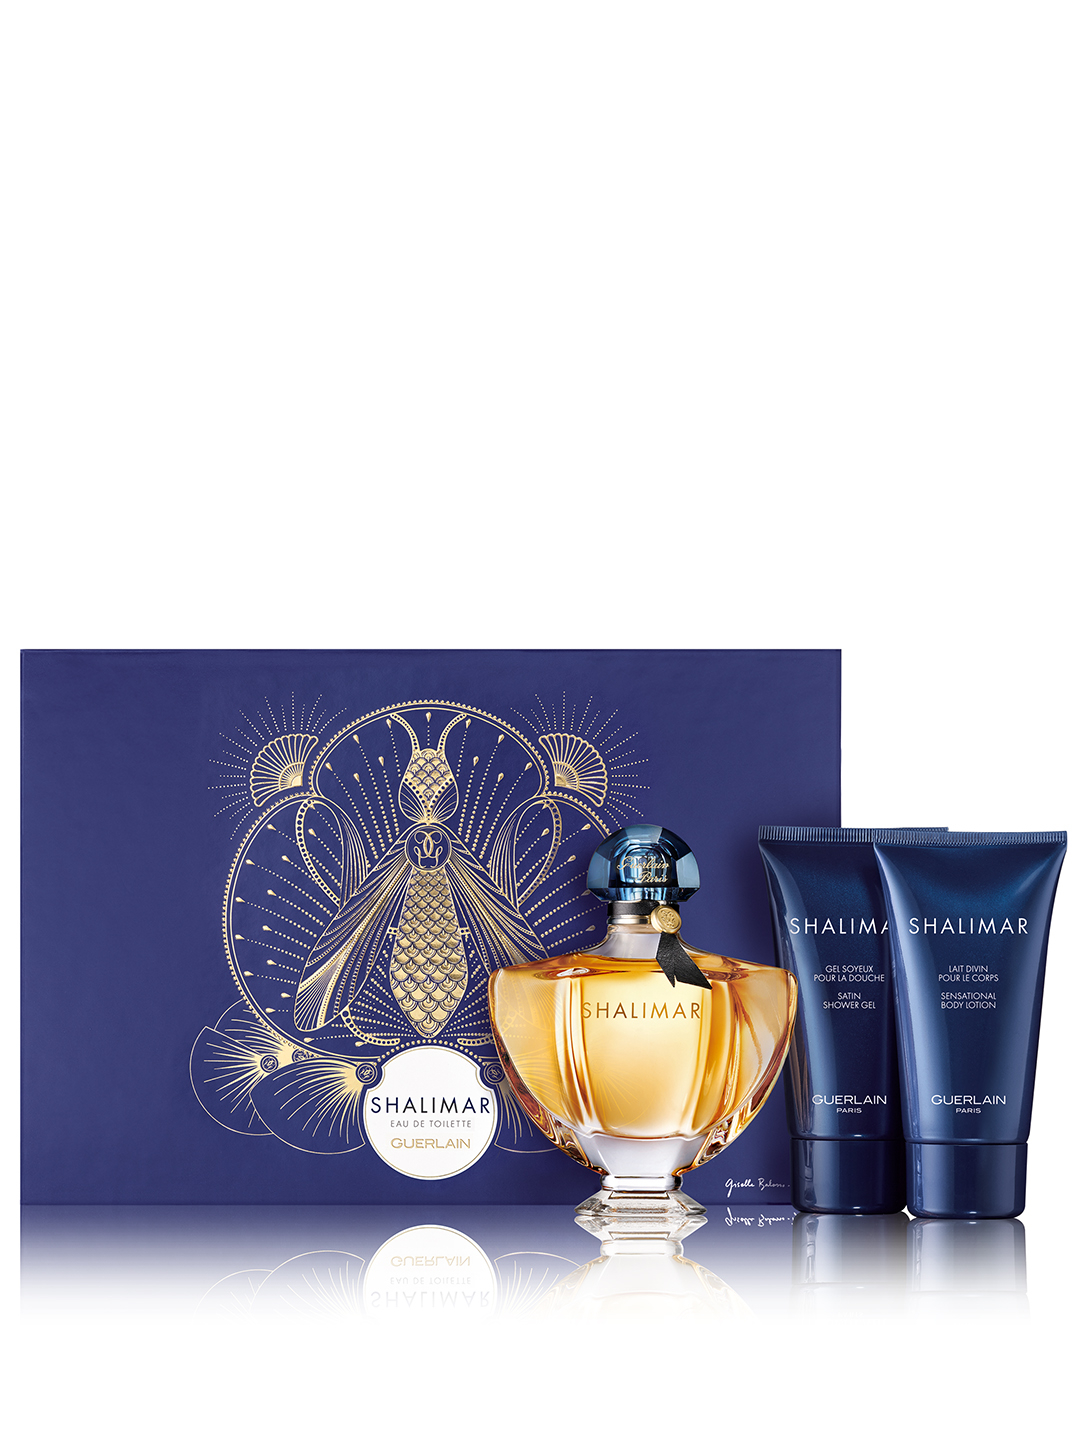 GUERLAIN Shalimar Gift Set Beauty